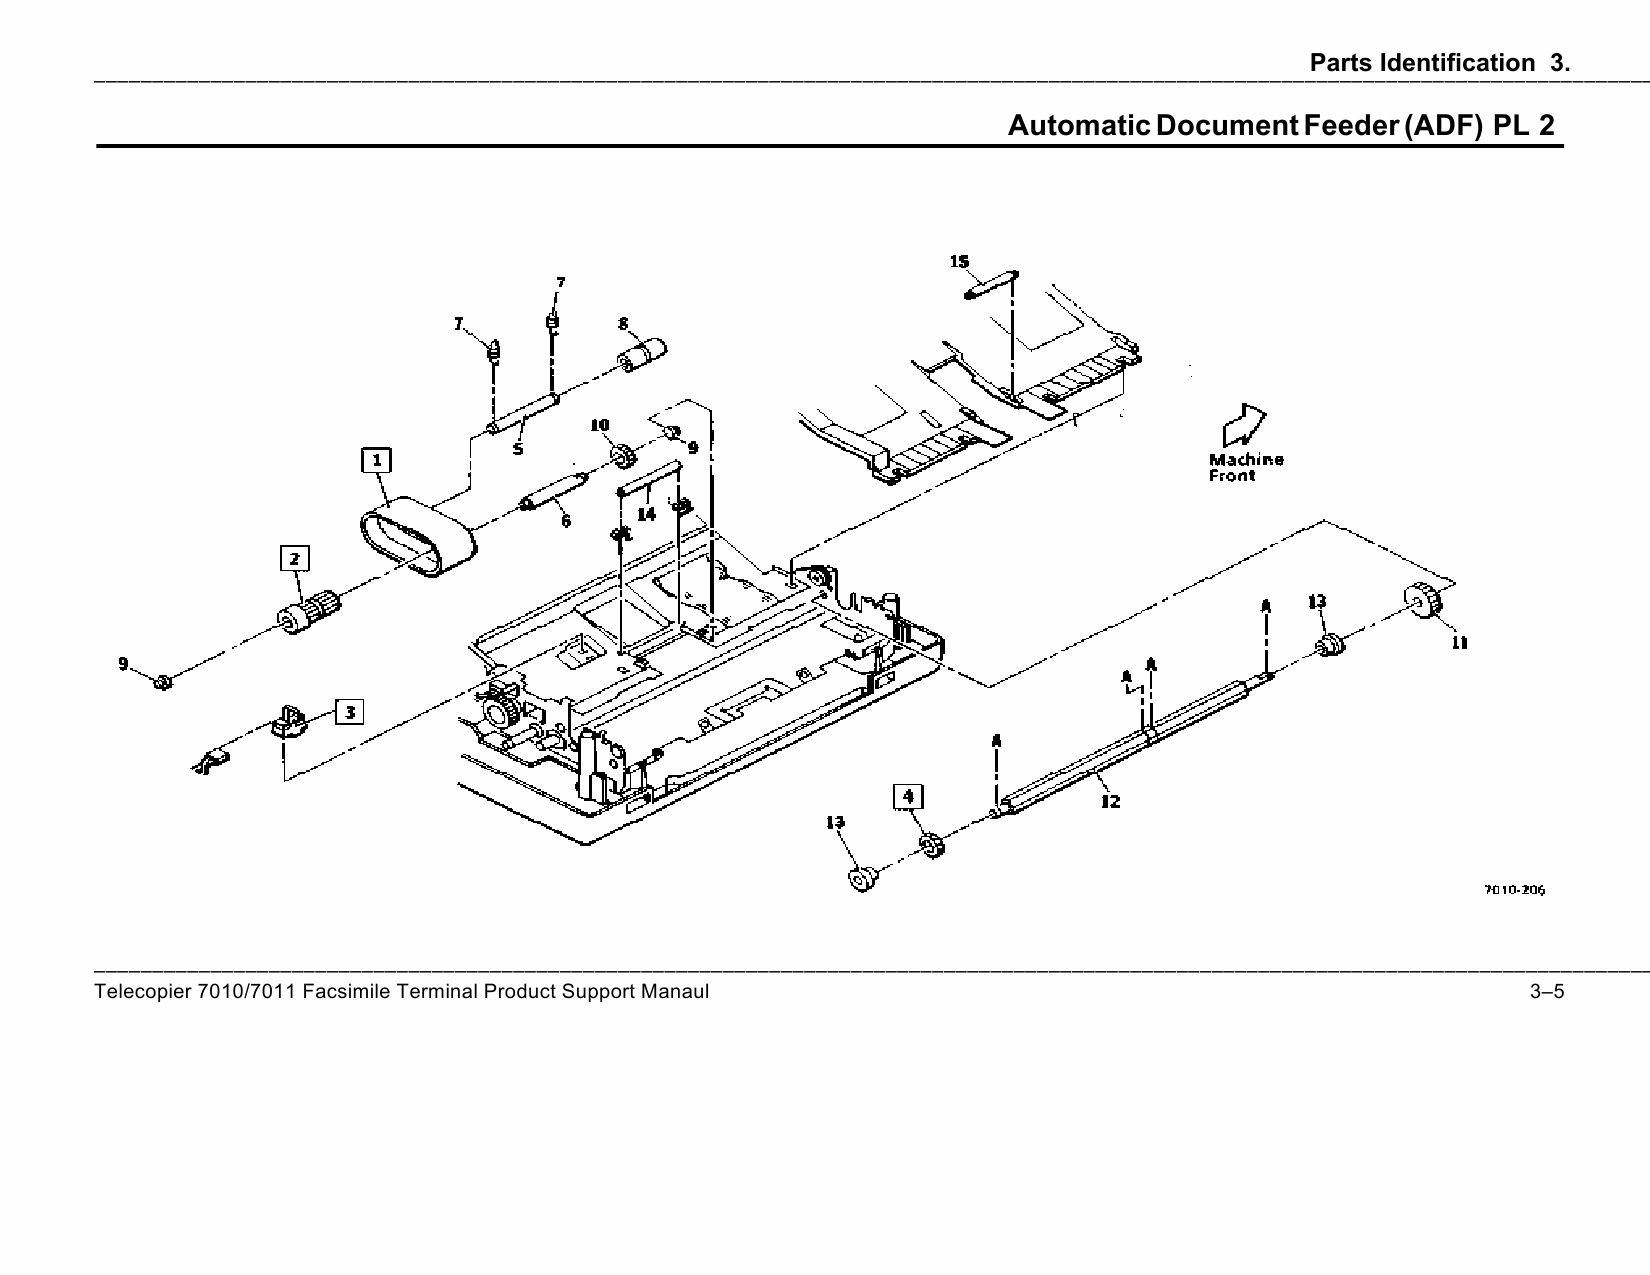 Xerox Printer 7010 7011 Fax Parts List and Service Manual